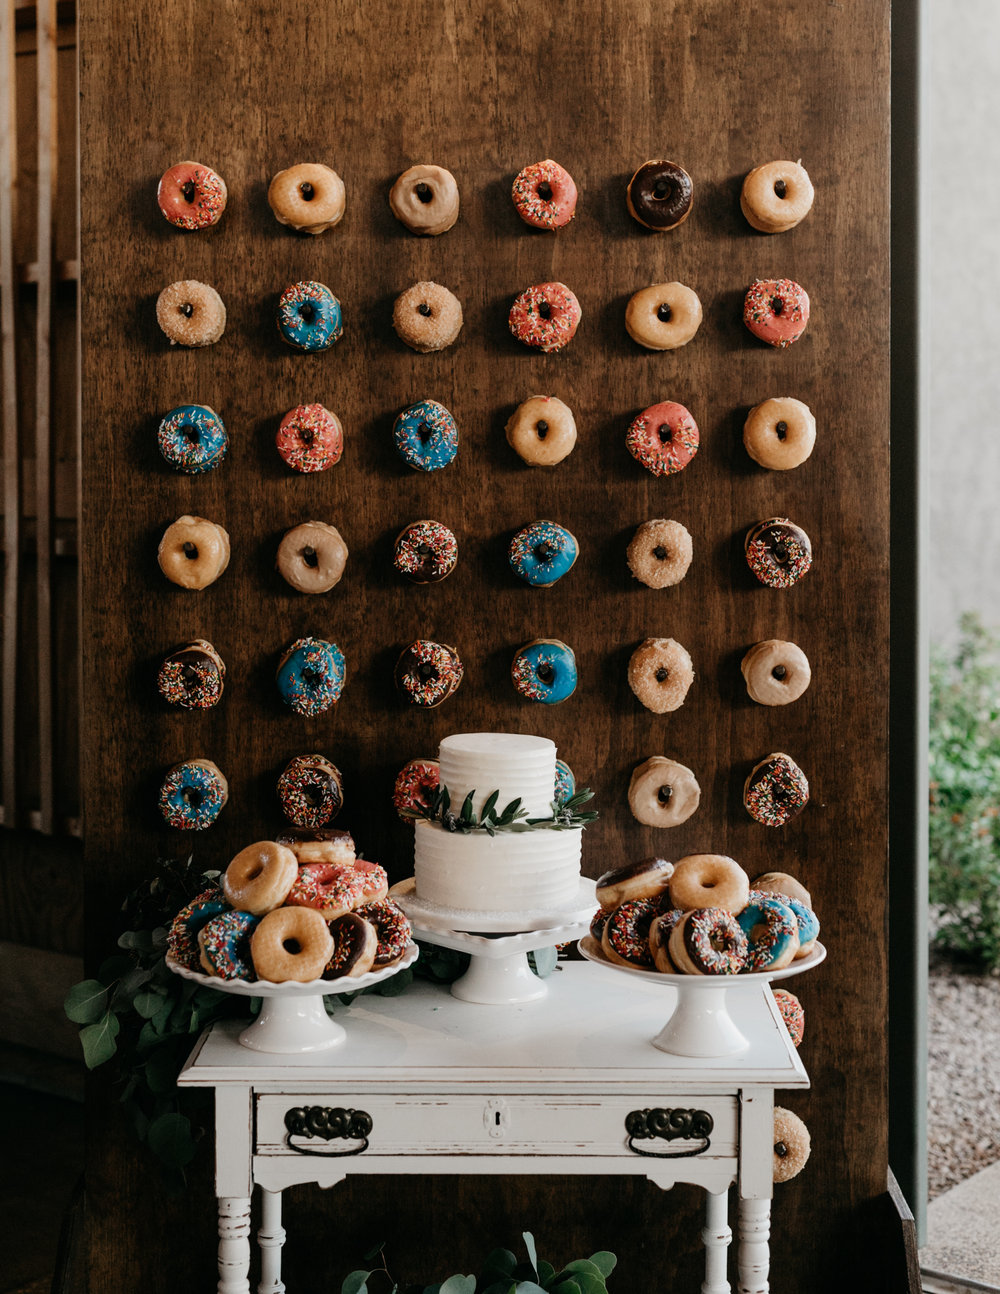 All You Need is Love and Doughnuts!  - with Tremaine Ranch - Arizona Wedding & Event, Vintage, Furniture, Tableware, & Specialty Rentals in Phoenix, Tucson, Flagstaff, Sedona, Tempe, Chandler, Mesa, Gilbert, Prescott, Payson39.jpg